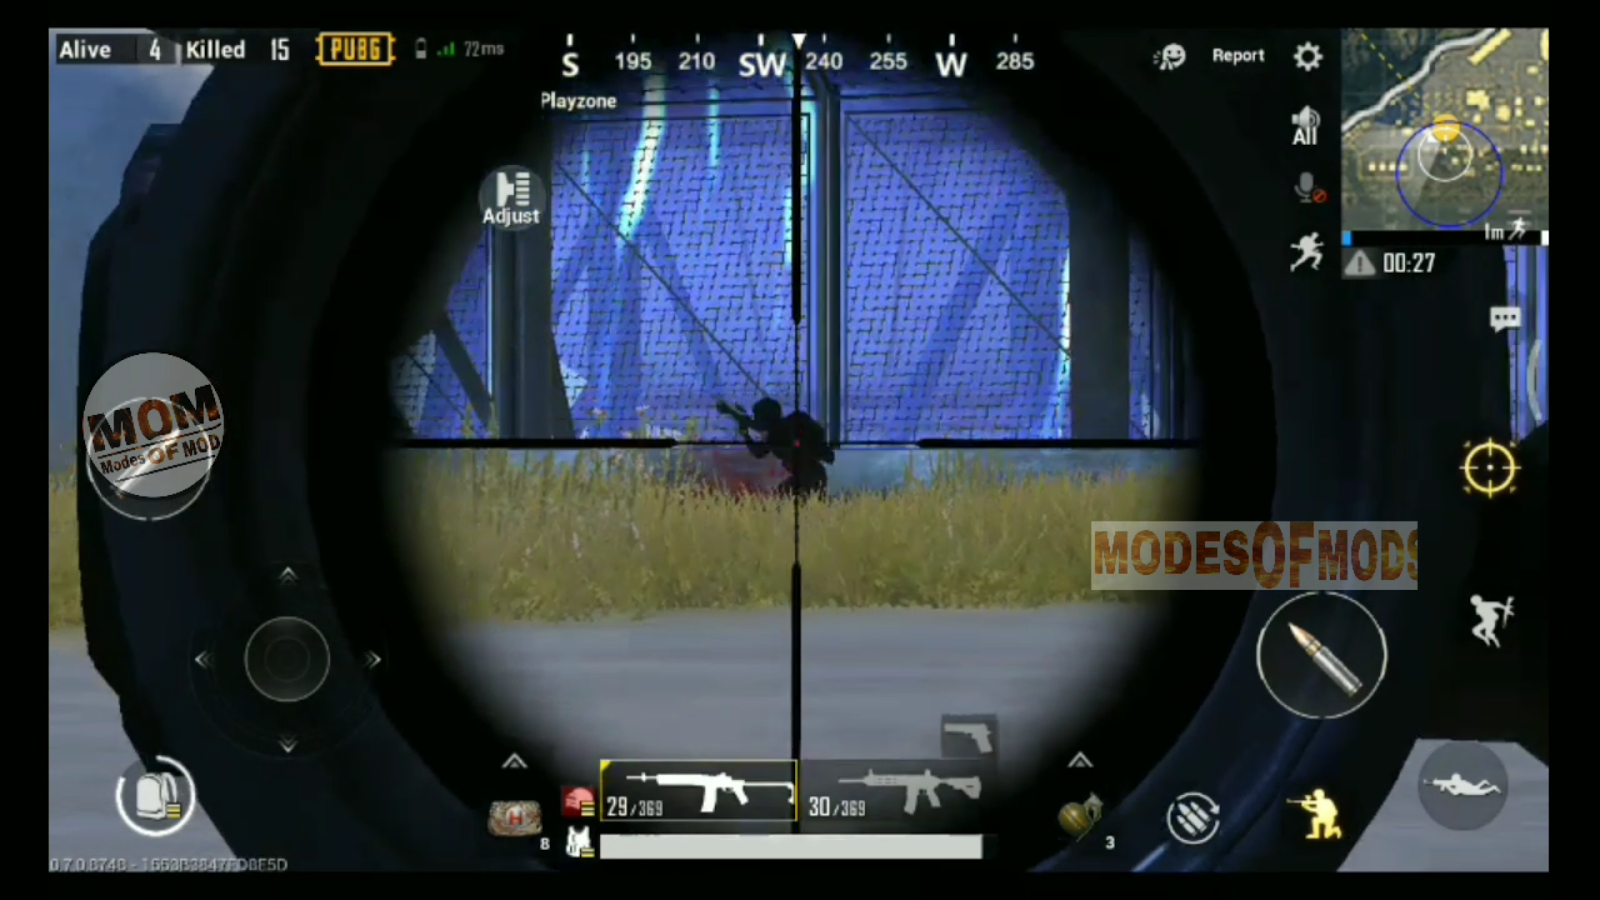 New Mate Black Vip Script Wall Shot Ver 0 7 0 Update Pubg Mobile - install pubg mobile patched apk 0 7 0 no obb needed!    3 install parallel space